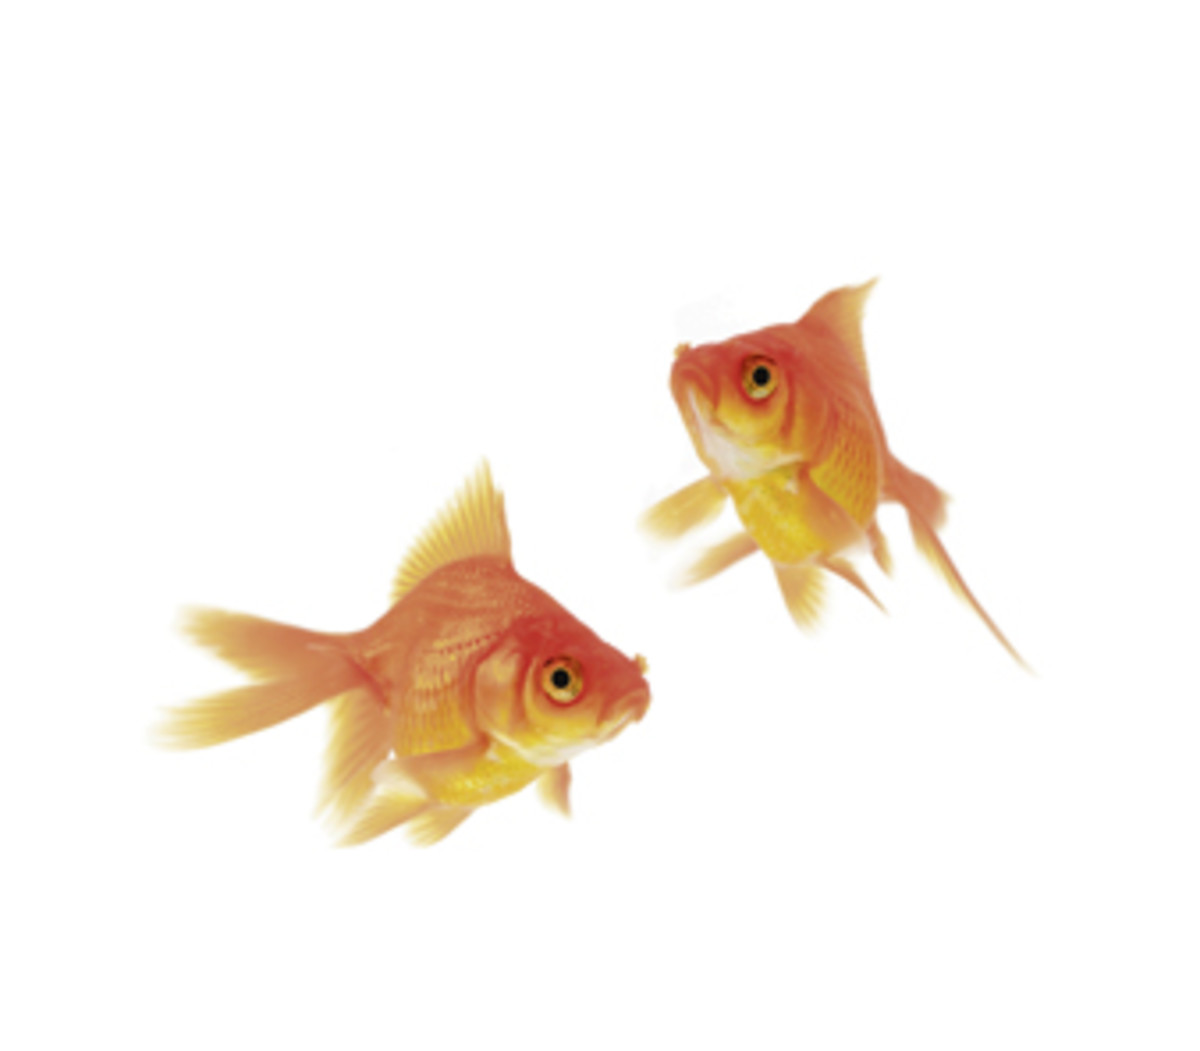 Gold Fish for removal of Bad Energy from environment